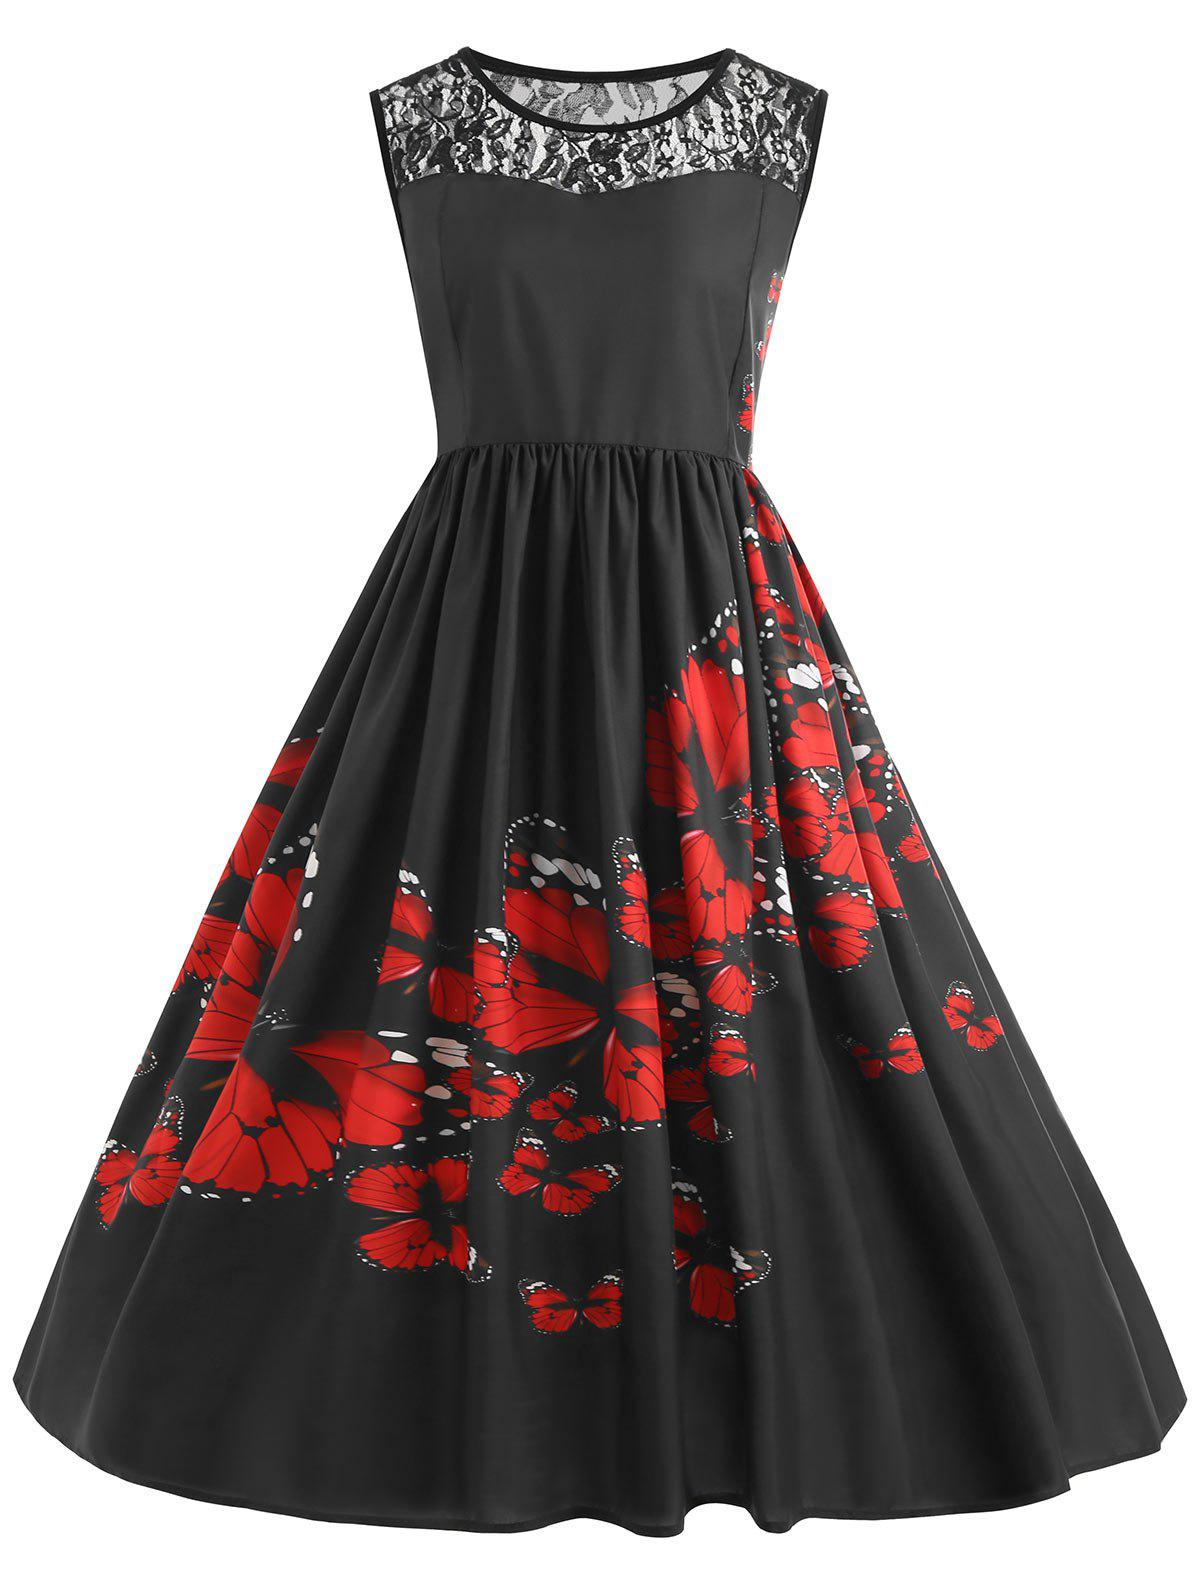 Fashion Lace Insert Plus Size Butterfly Print Midi 1950s Dress